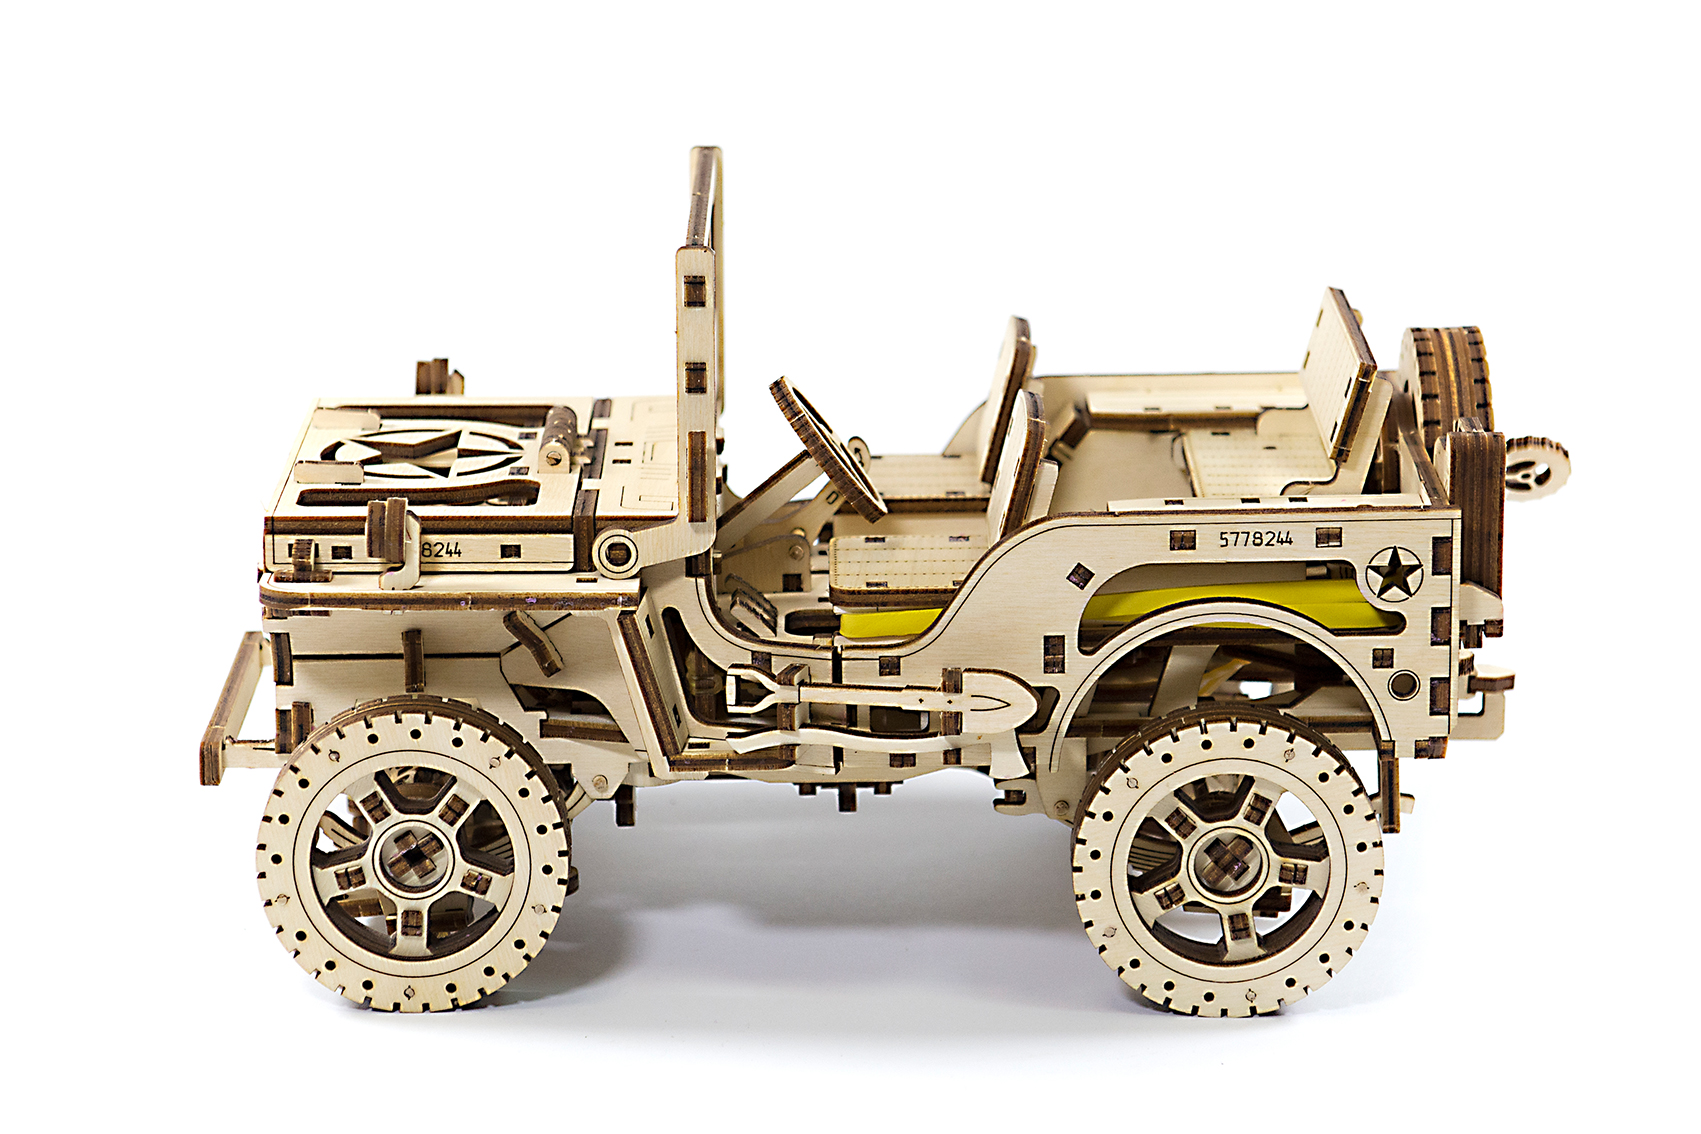 4x4 JEEP - WOODEN CITY 3D Mechanical Wooden Model from kidsrus